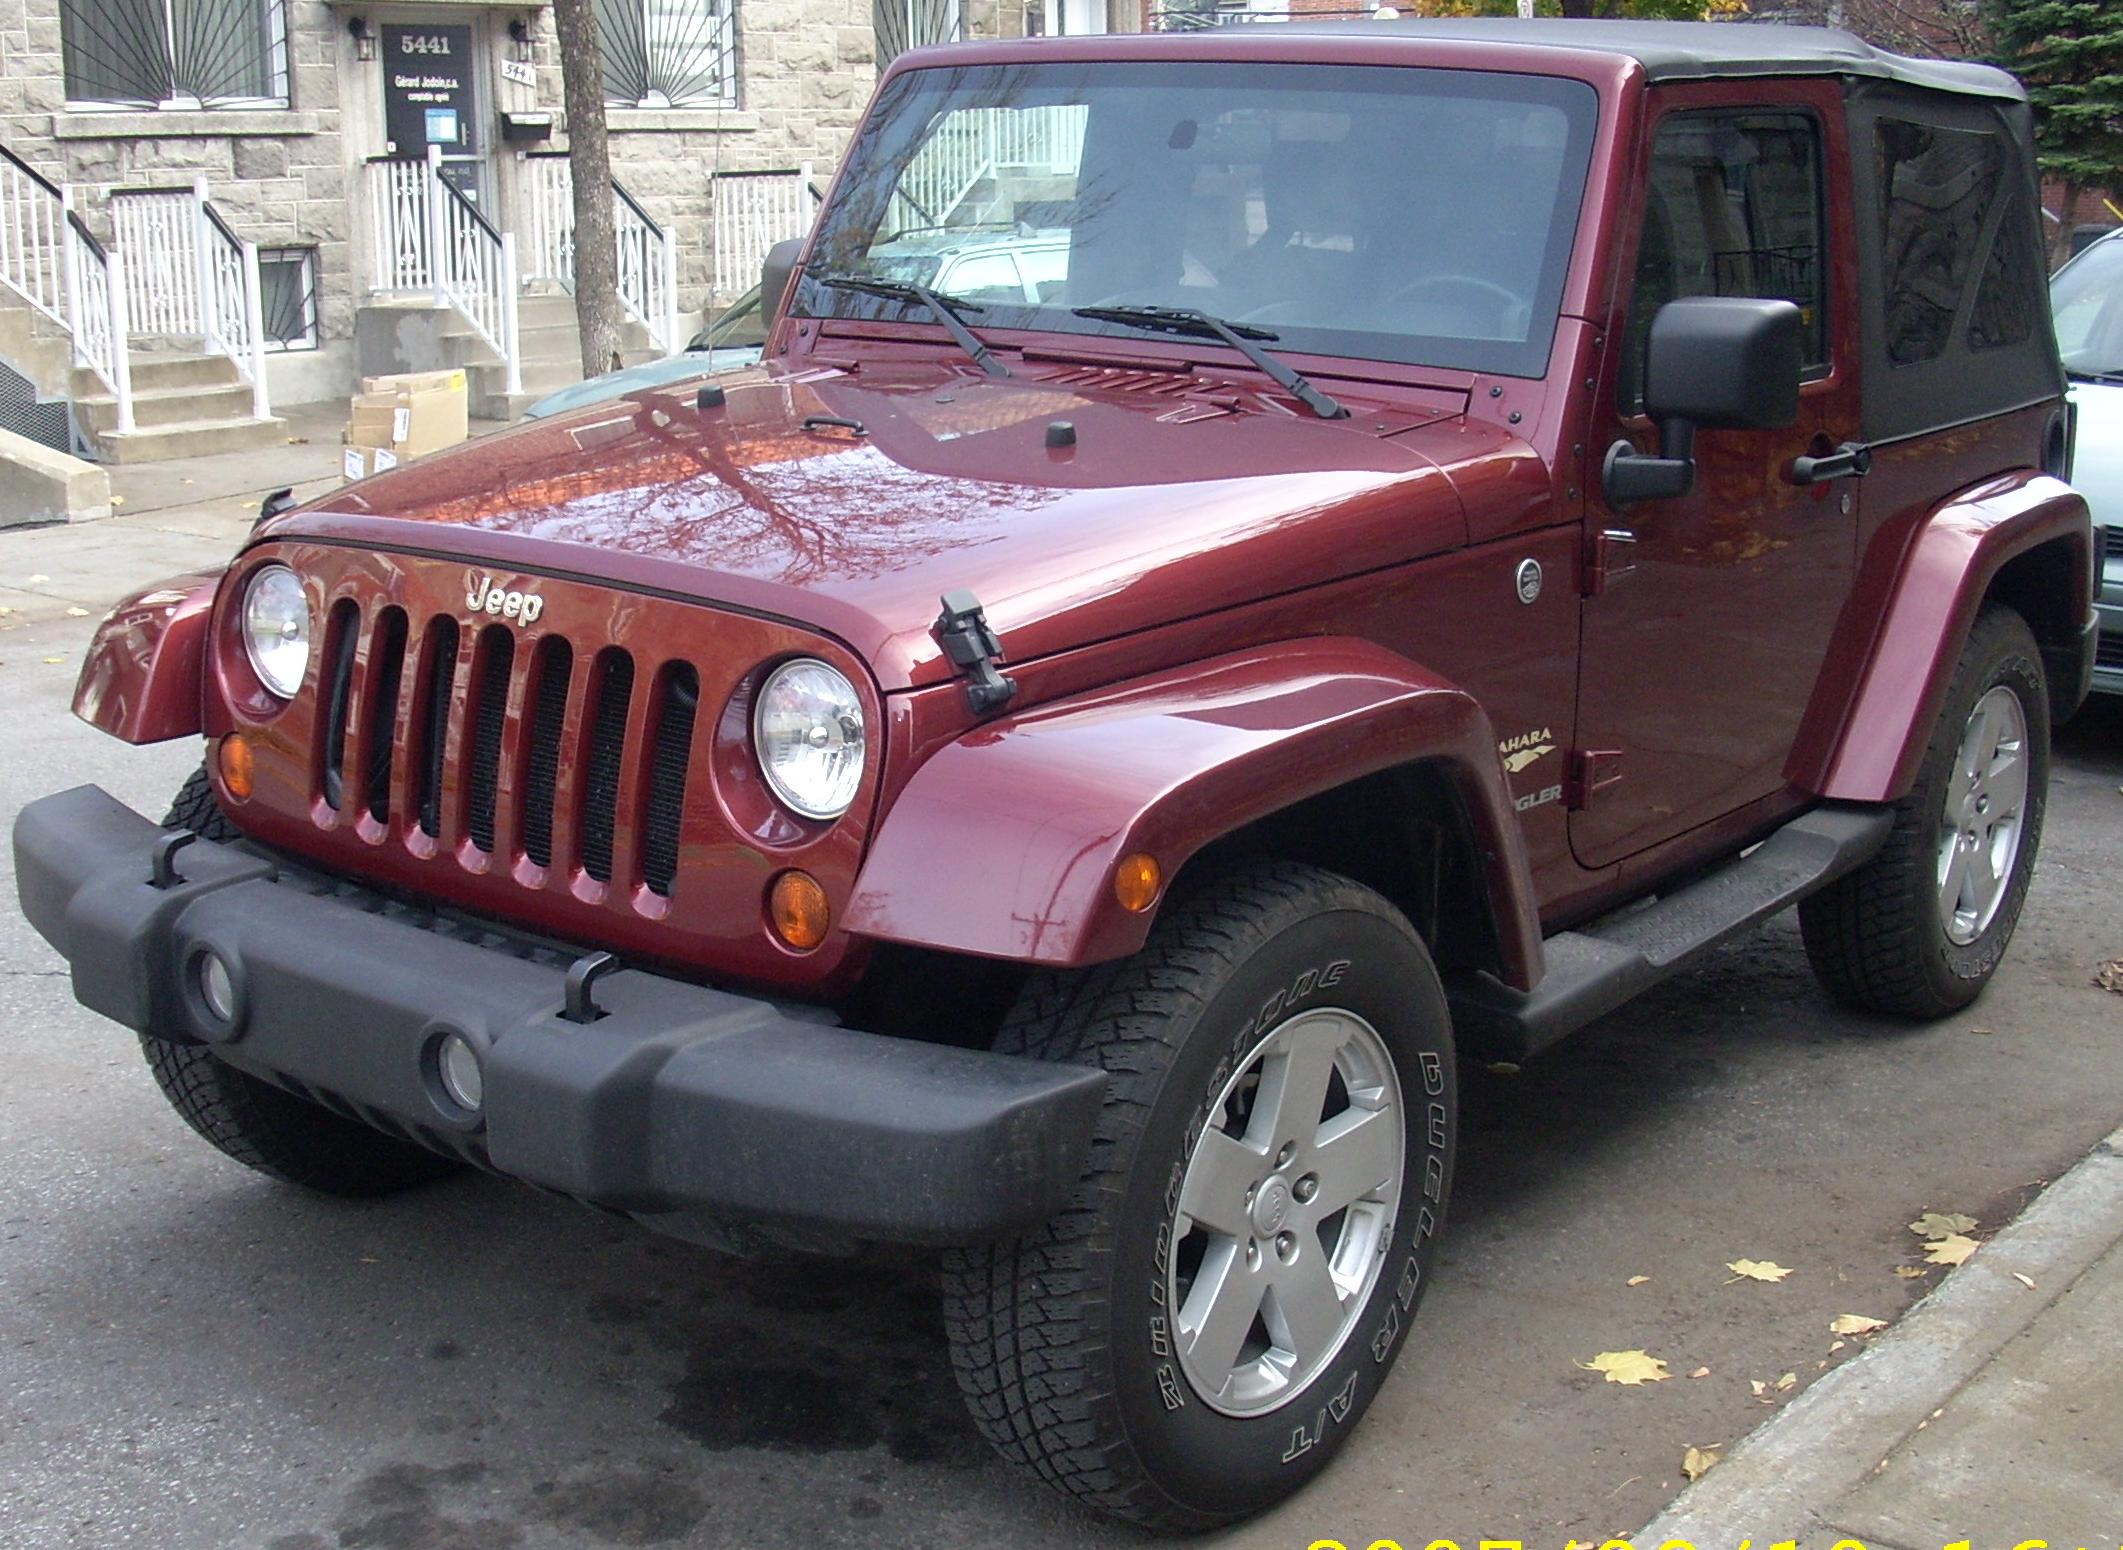 File:Jeep JK Wrangler Sahara 2-Door Convertible.jpg ...